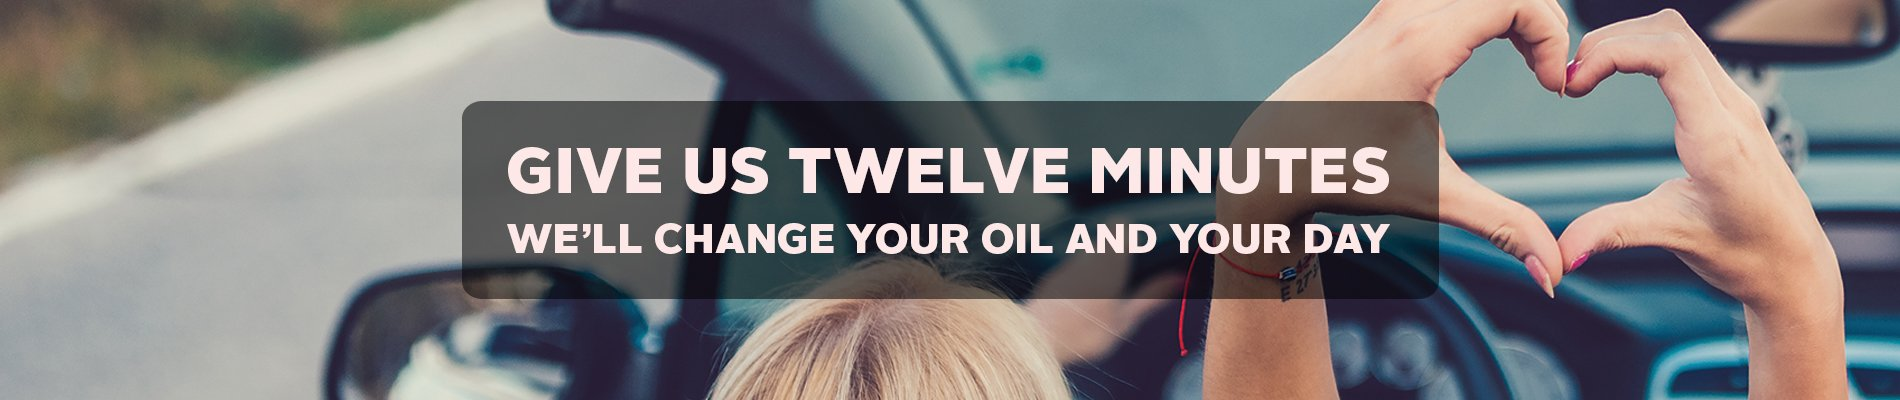 Give us twelve minutes. We'll change your oil and your day